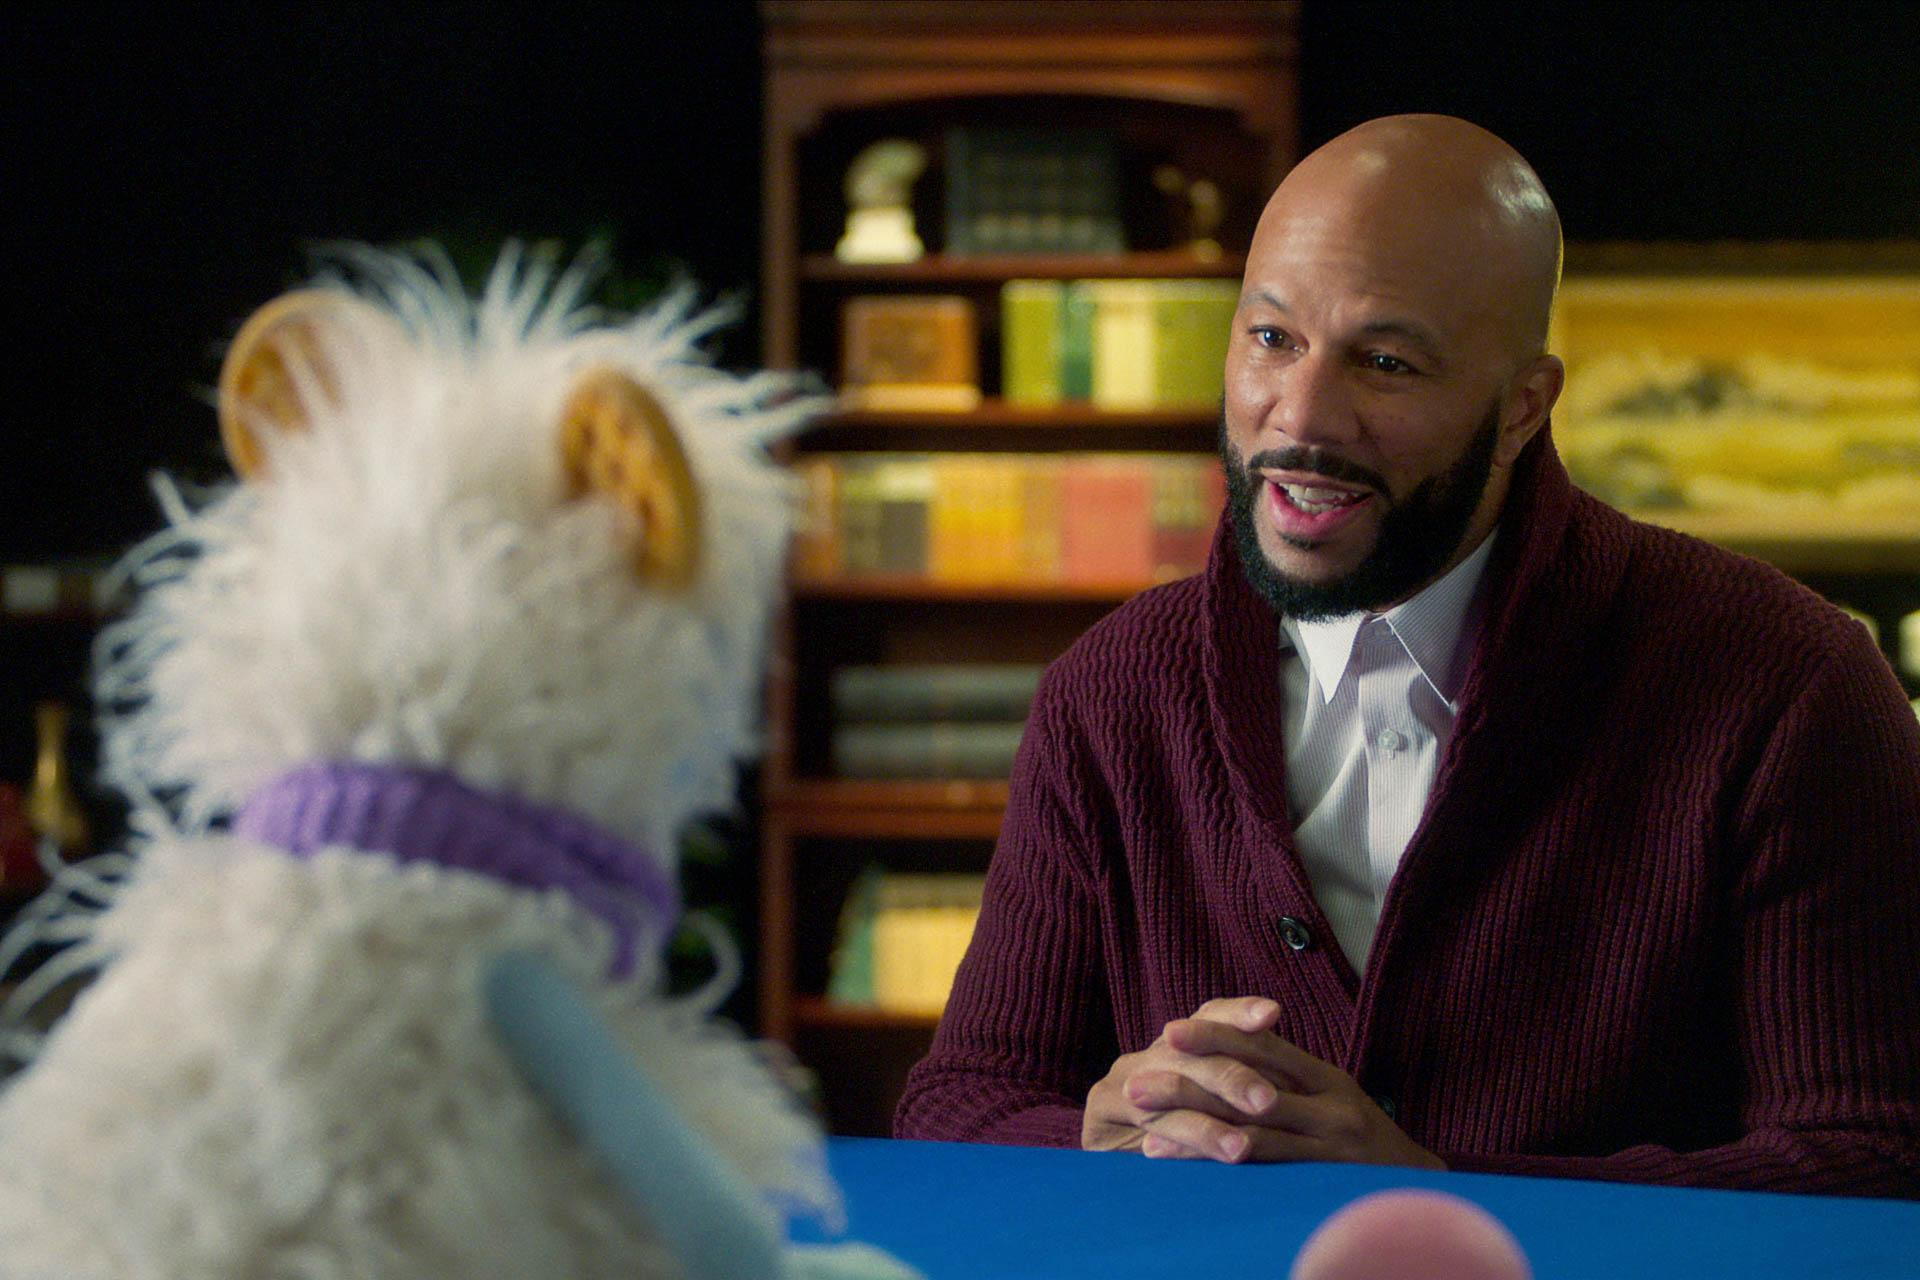 WAFFLES and COMMON as MARIO WINSTON RUTHERFORD